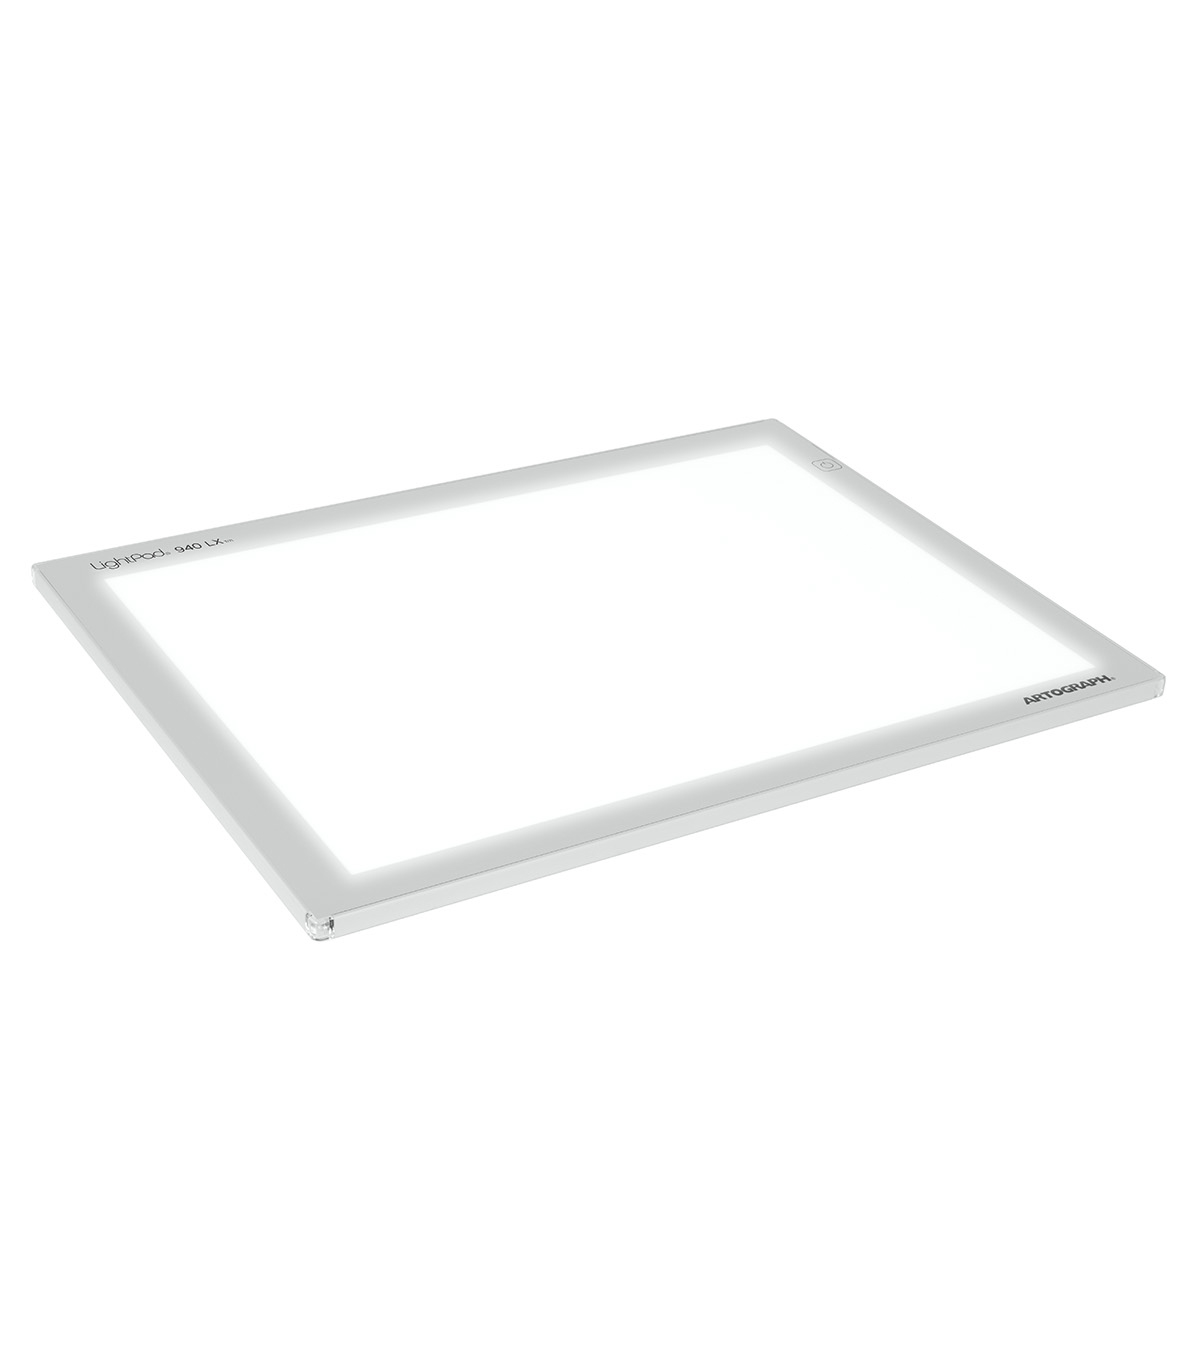 Artograph Light Pad Light Box 12\u0022X17\u0022X.625\u0022